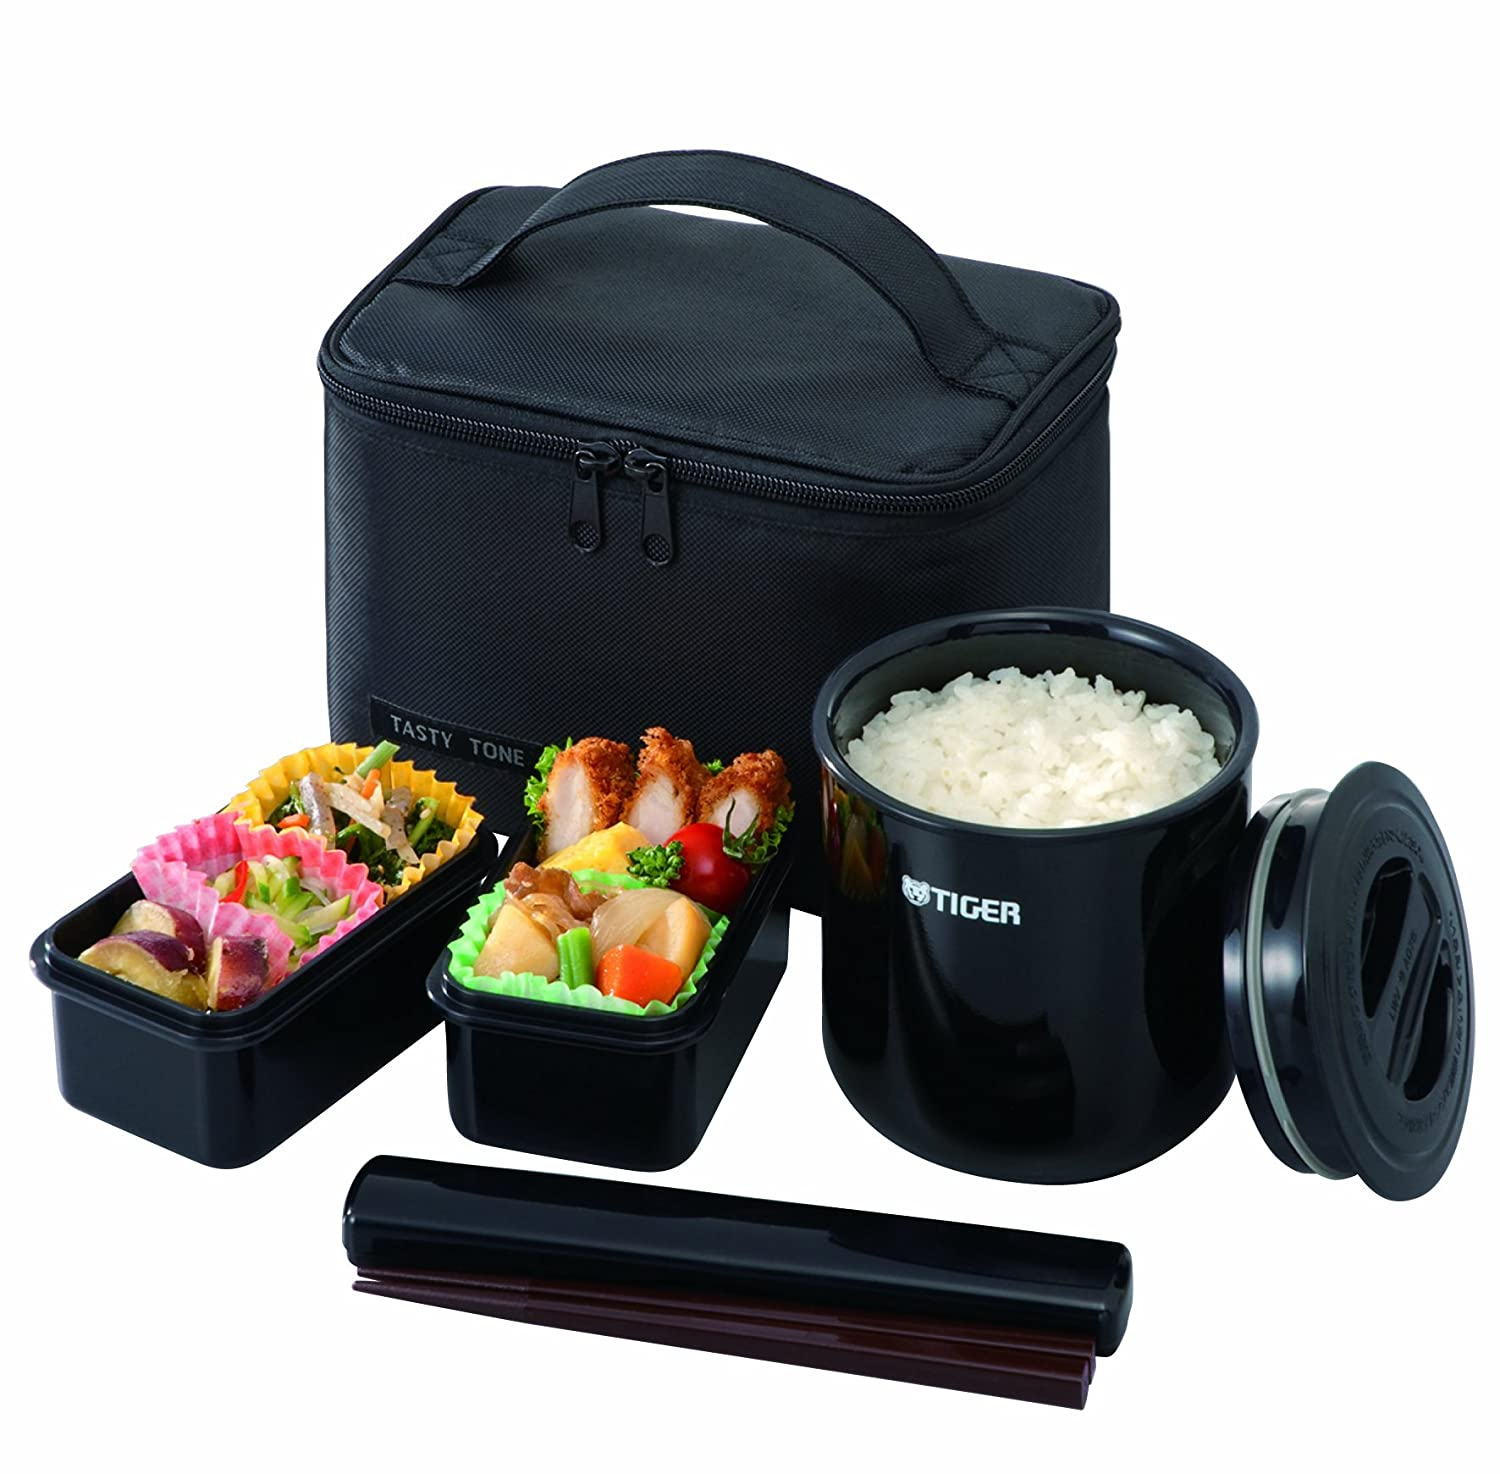 top 10 best insulated lunch boxes lunch boxes that keep food warm thermal lunch boxes. Black Bedroom Furniture Sets. Home Design Ideas